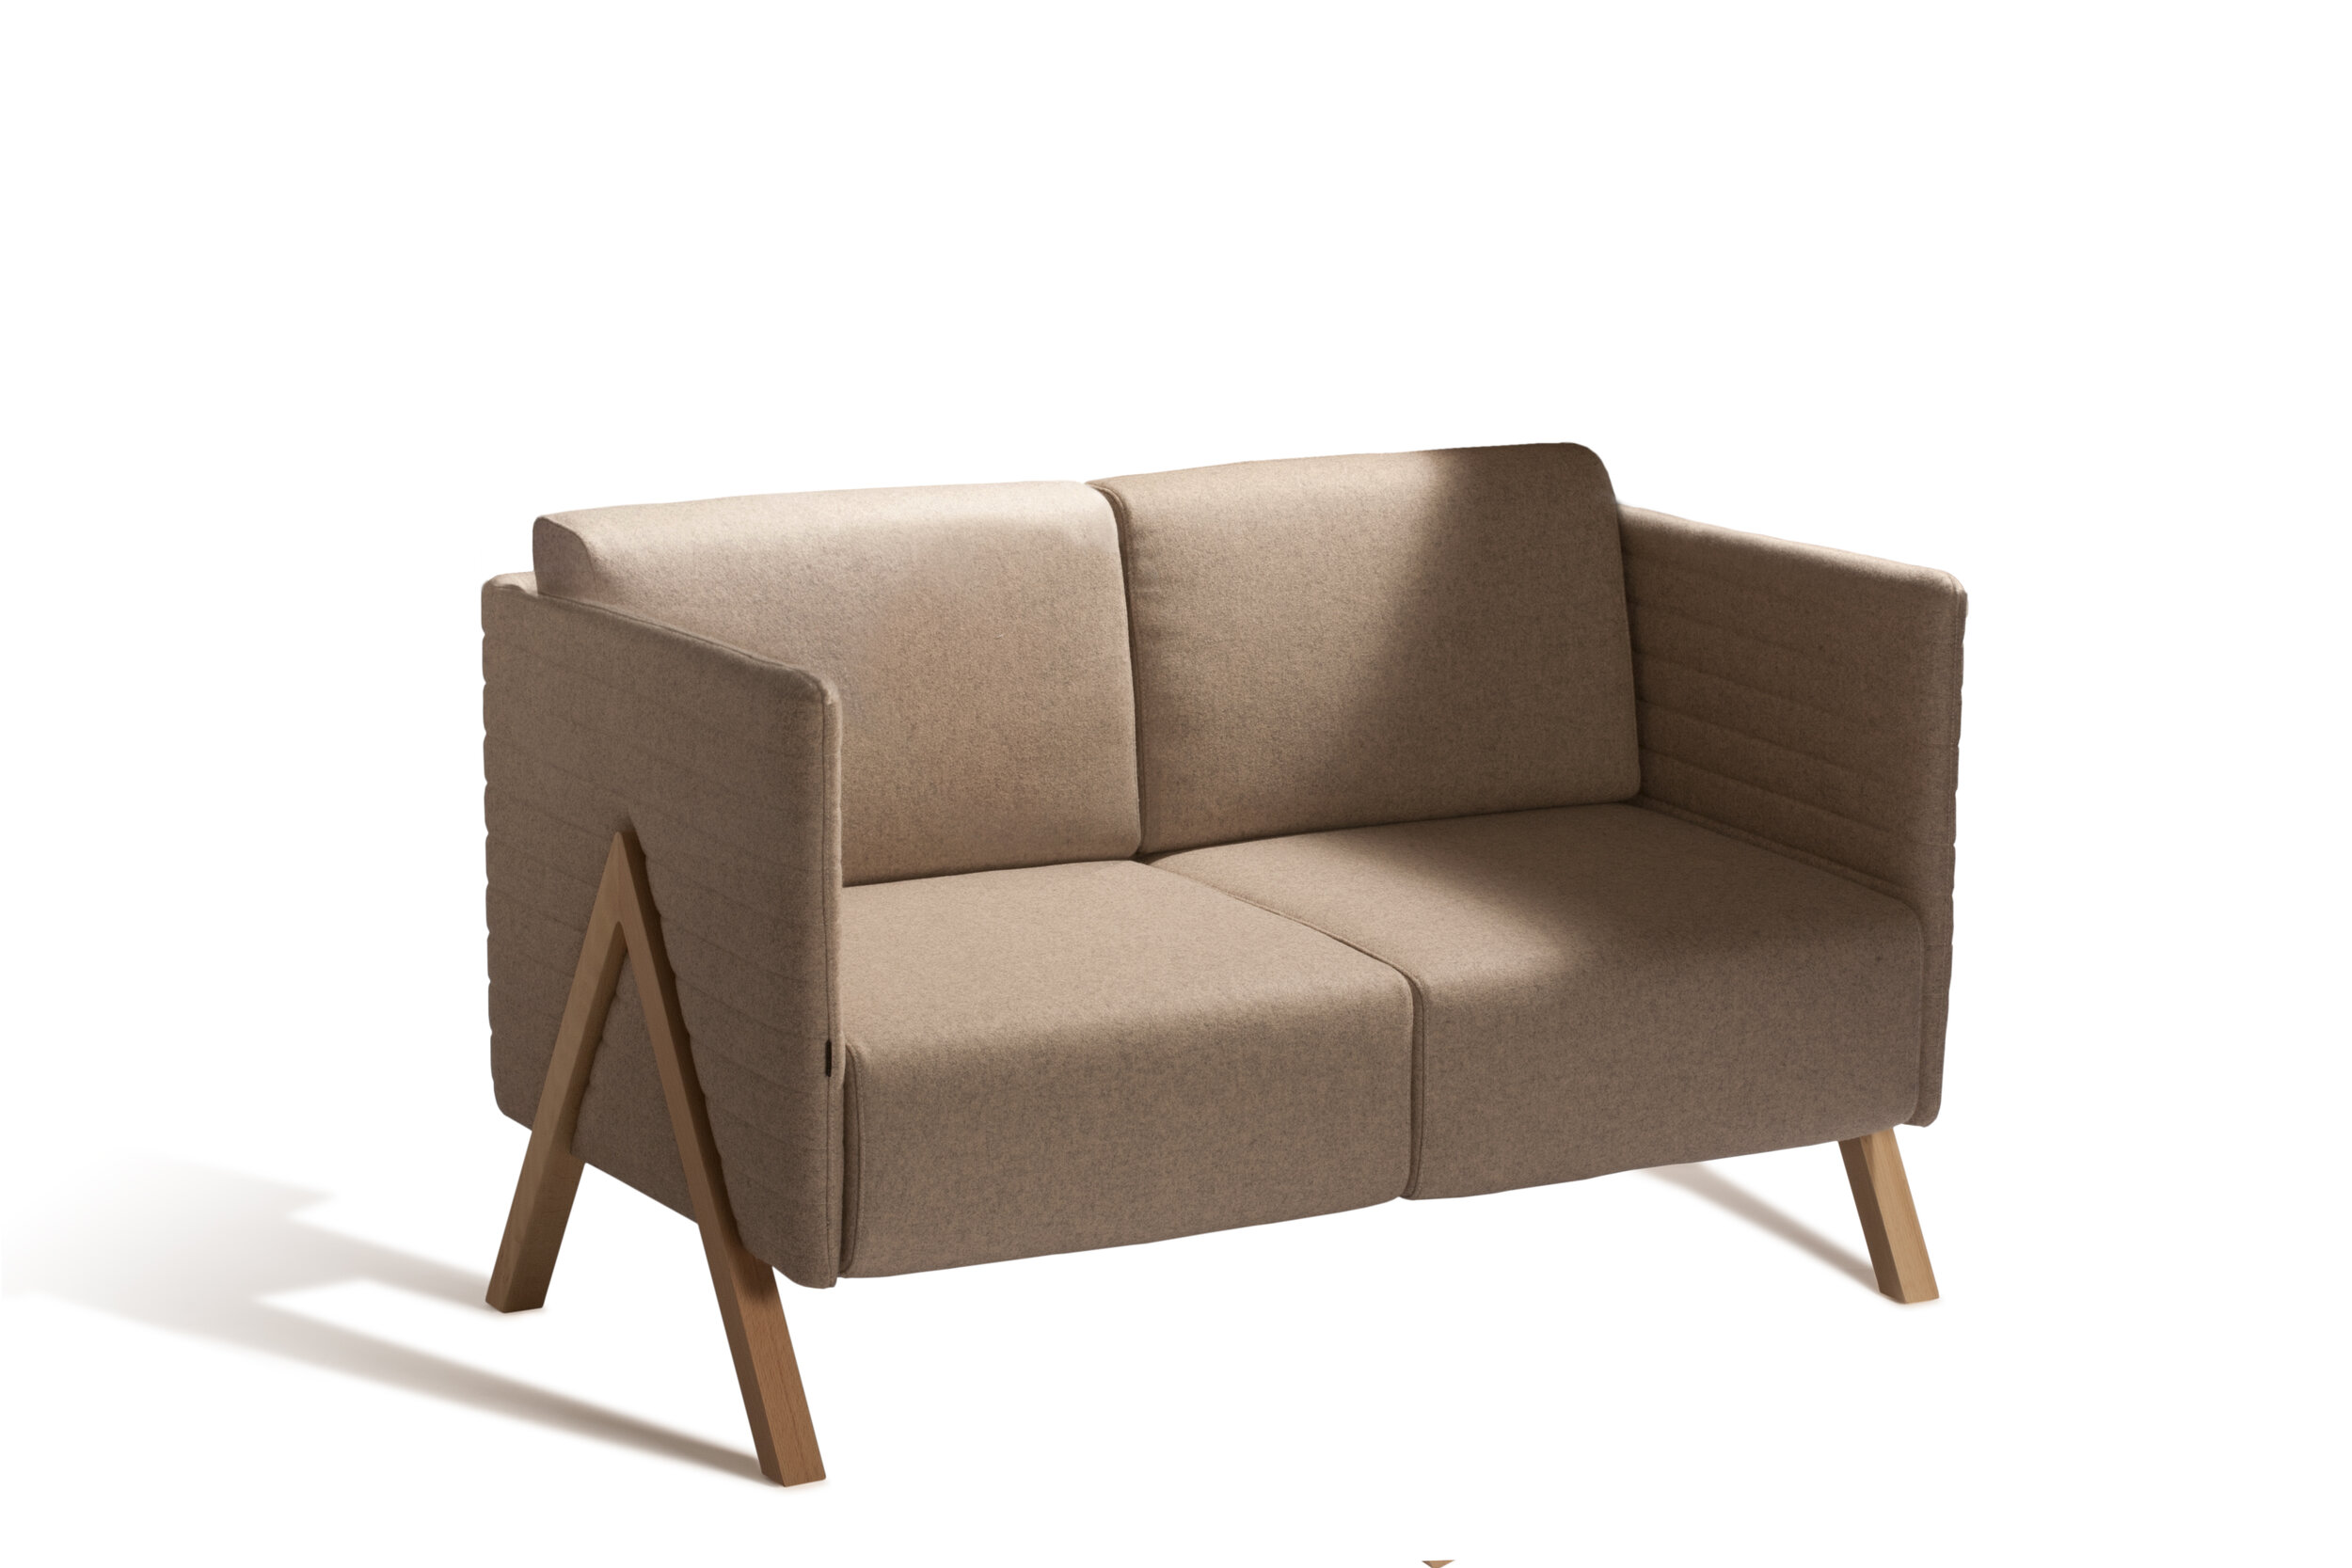 Vision Sofa,  starting at $1,613 List